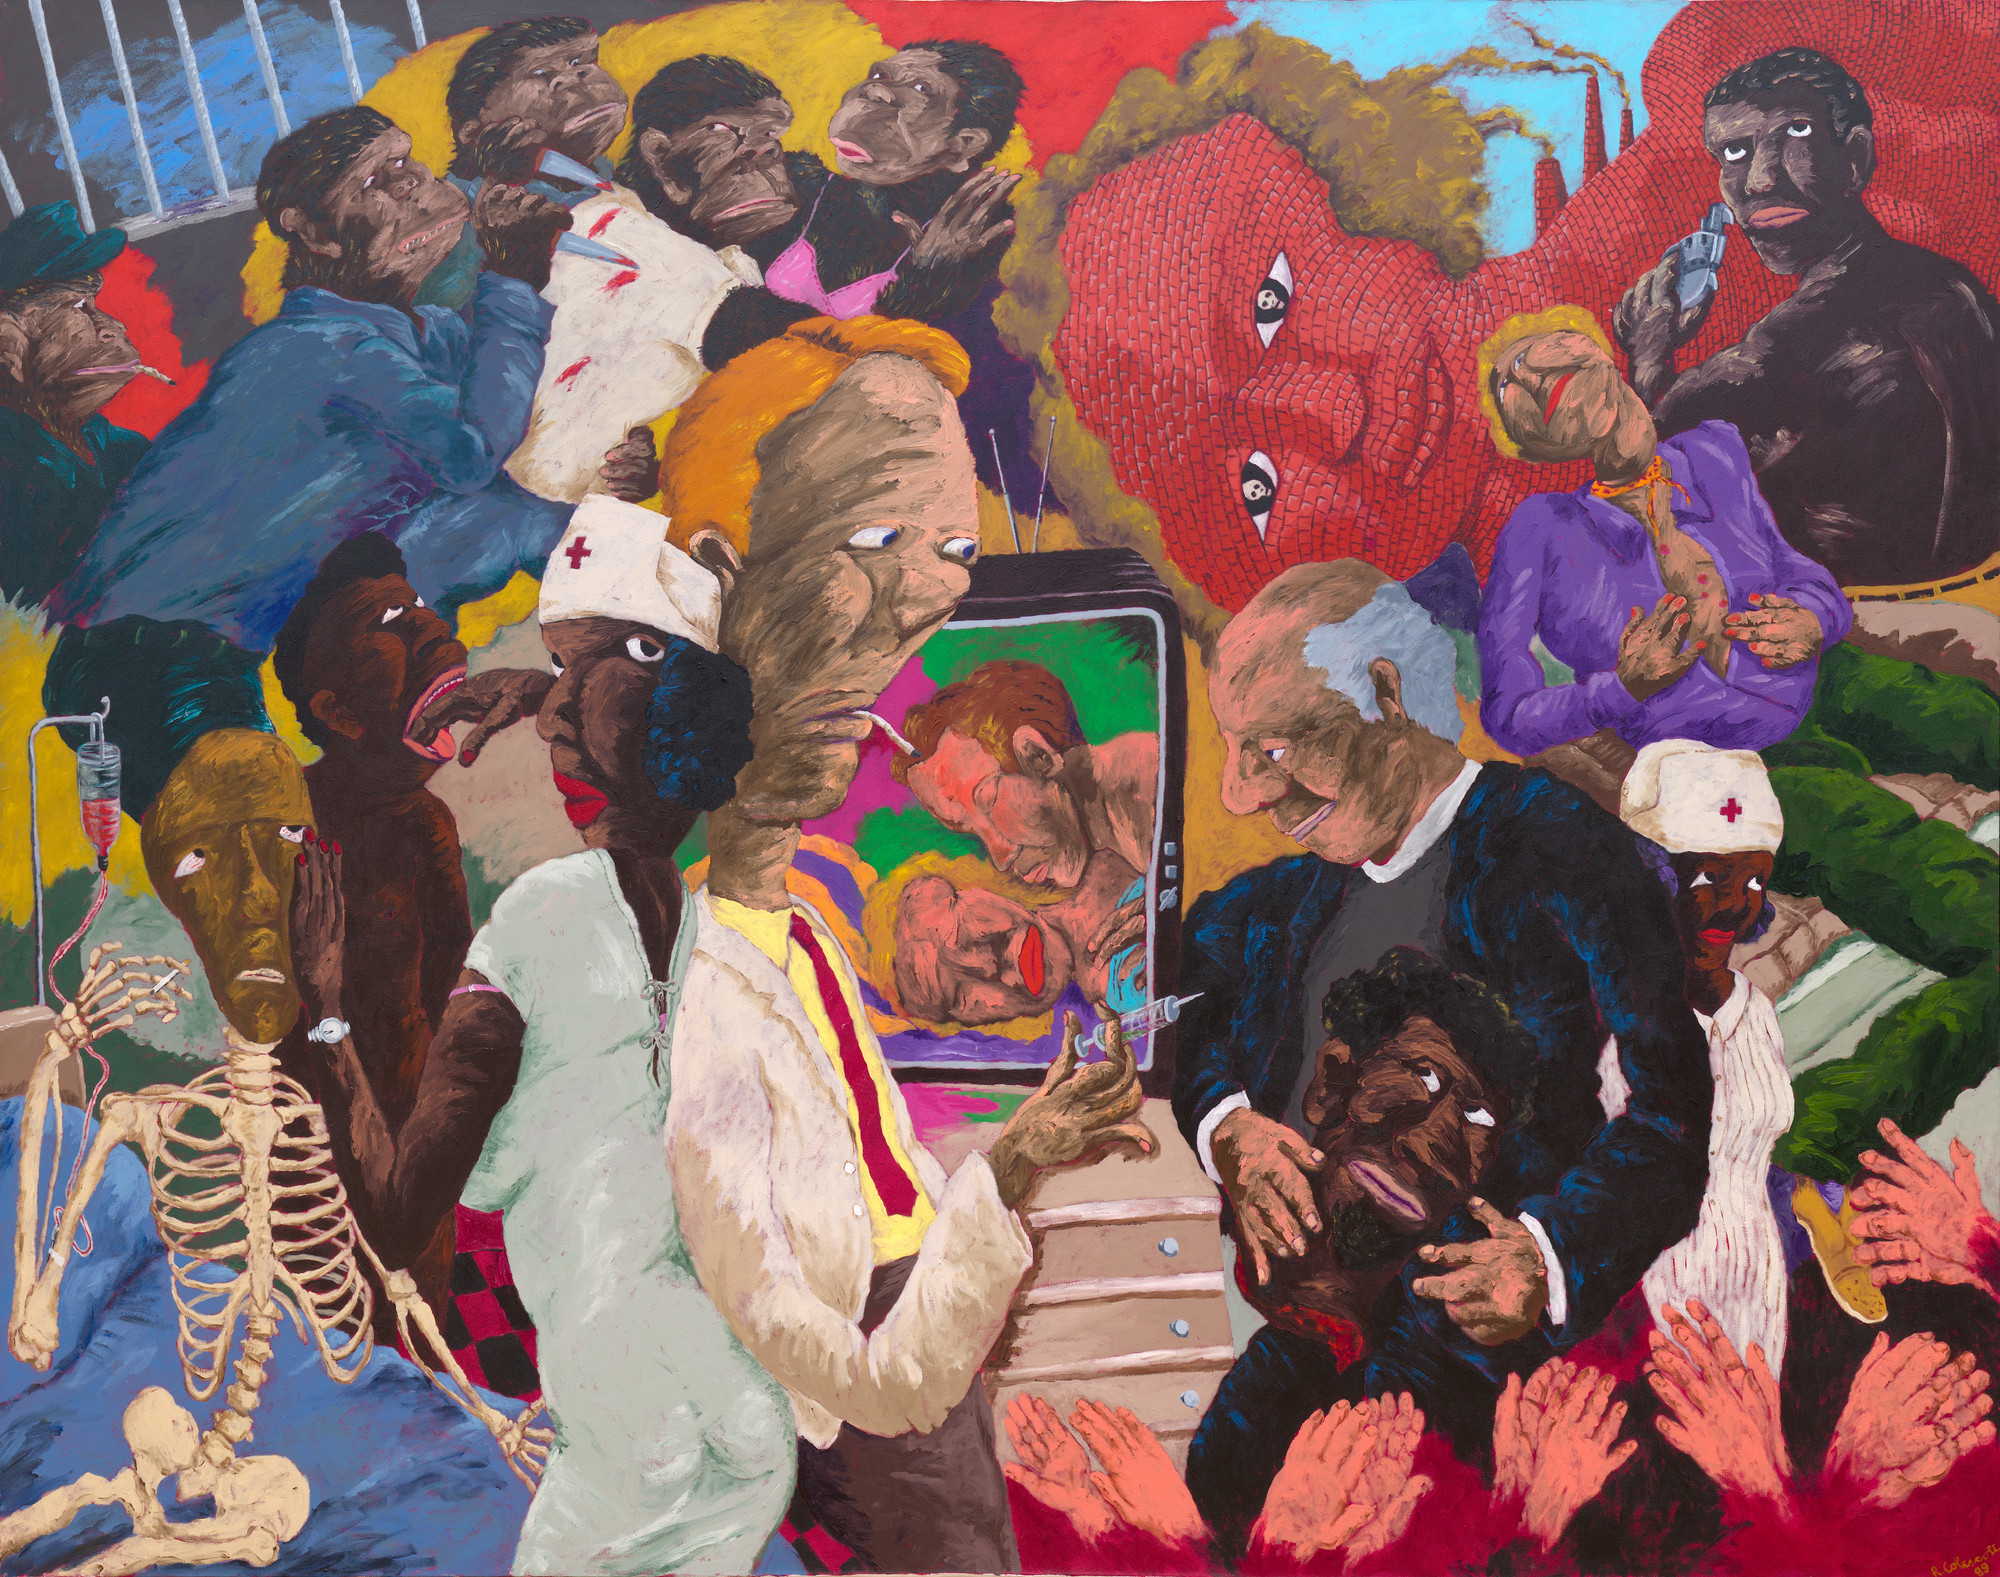 Robert Colescott. Emergency Room. 1989